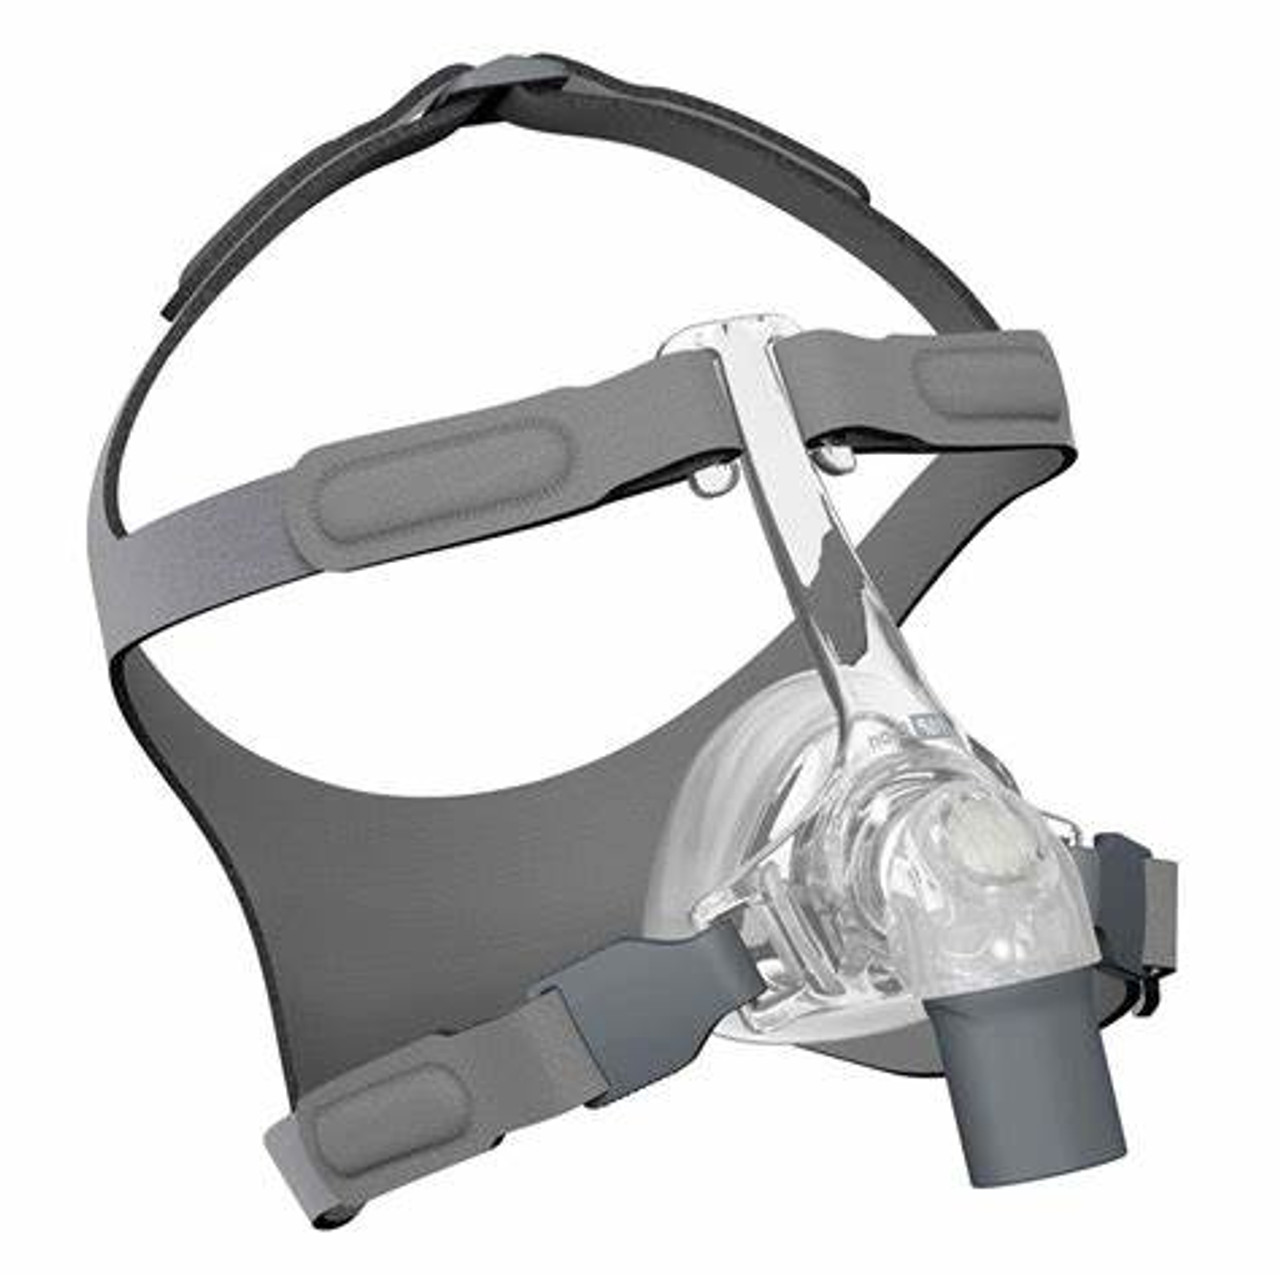 Fisher And Paykel Healthcare Eson Nasal CPAP Interface